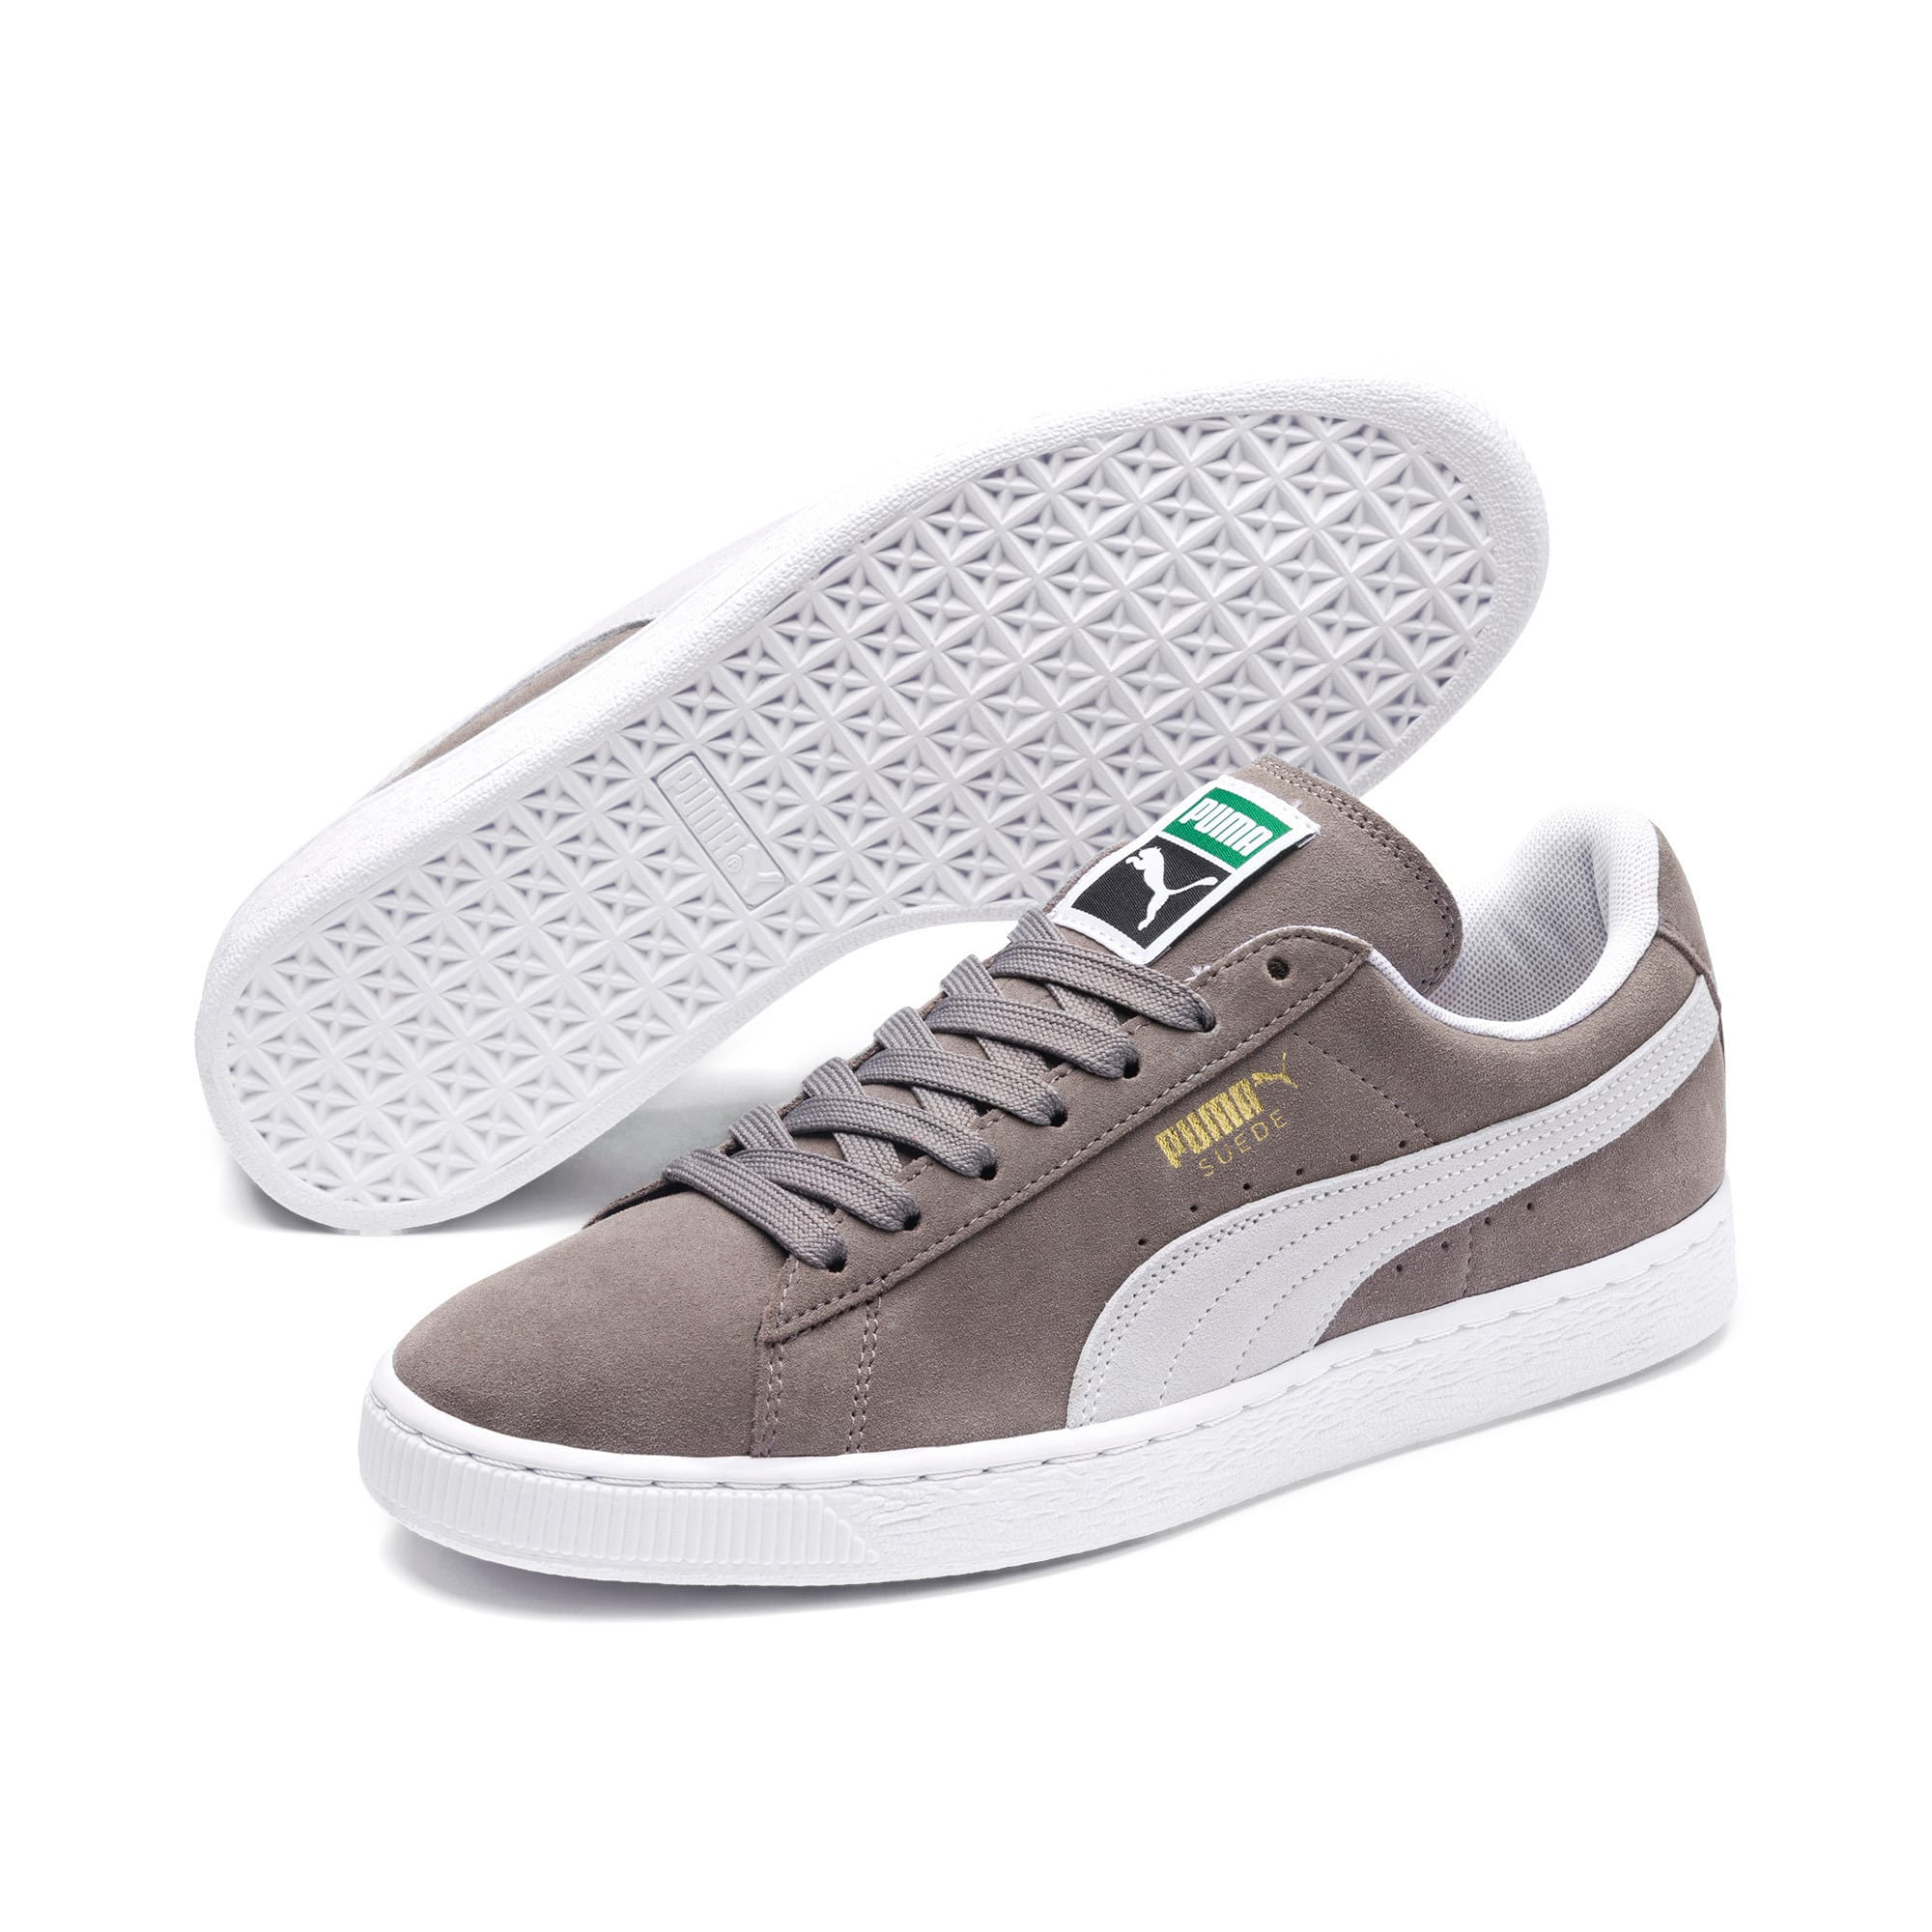 Thumbnail 2 of Suede Classic+ Sneakers, steeple gray-white, medium